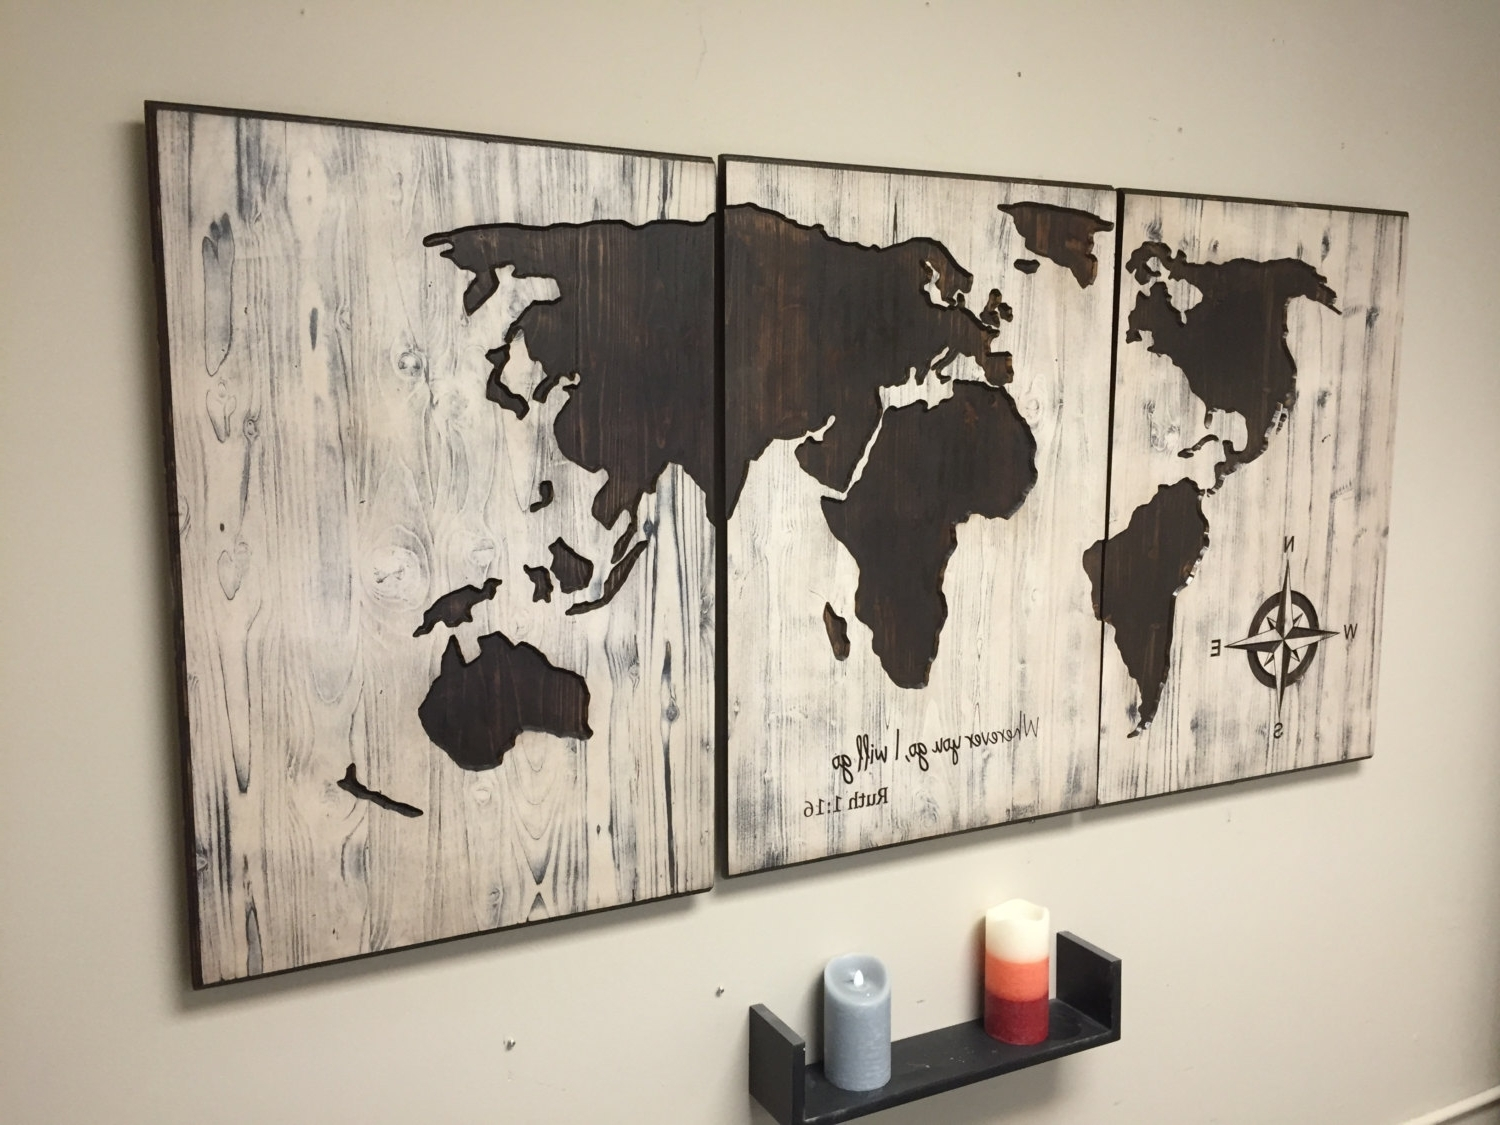 Preferred World Map Reclaimed Barn Door Wood String Art Wall Decor 39 X 29 And For String Map Wall Art (View 7 of 15)